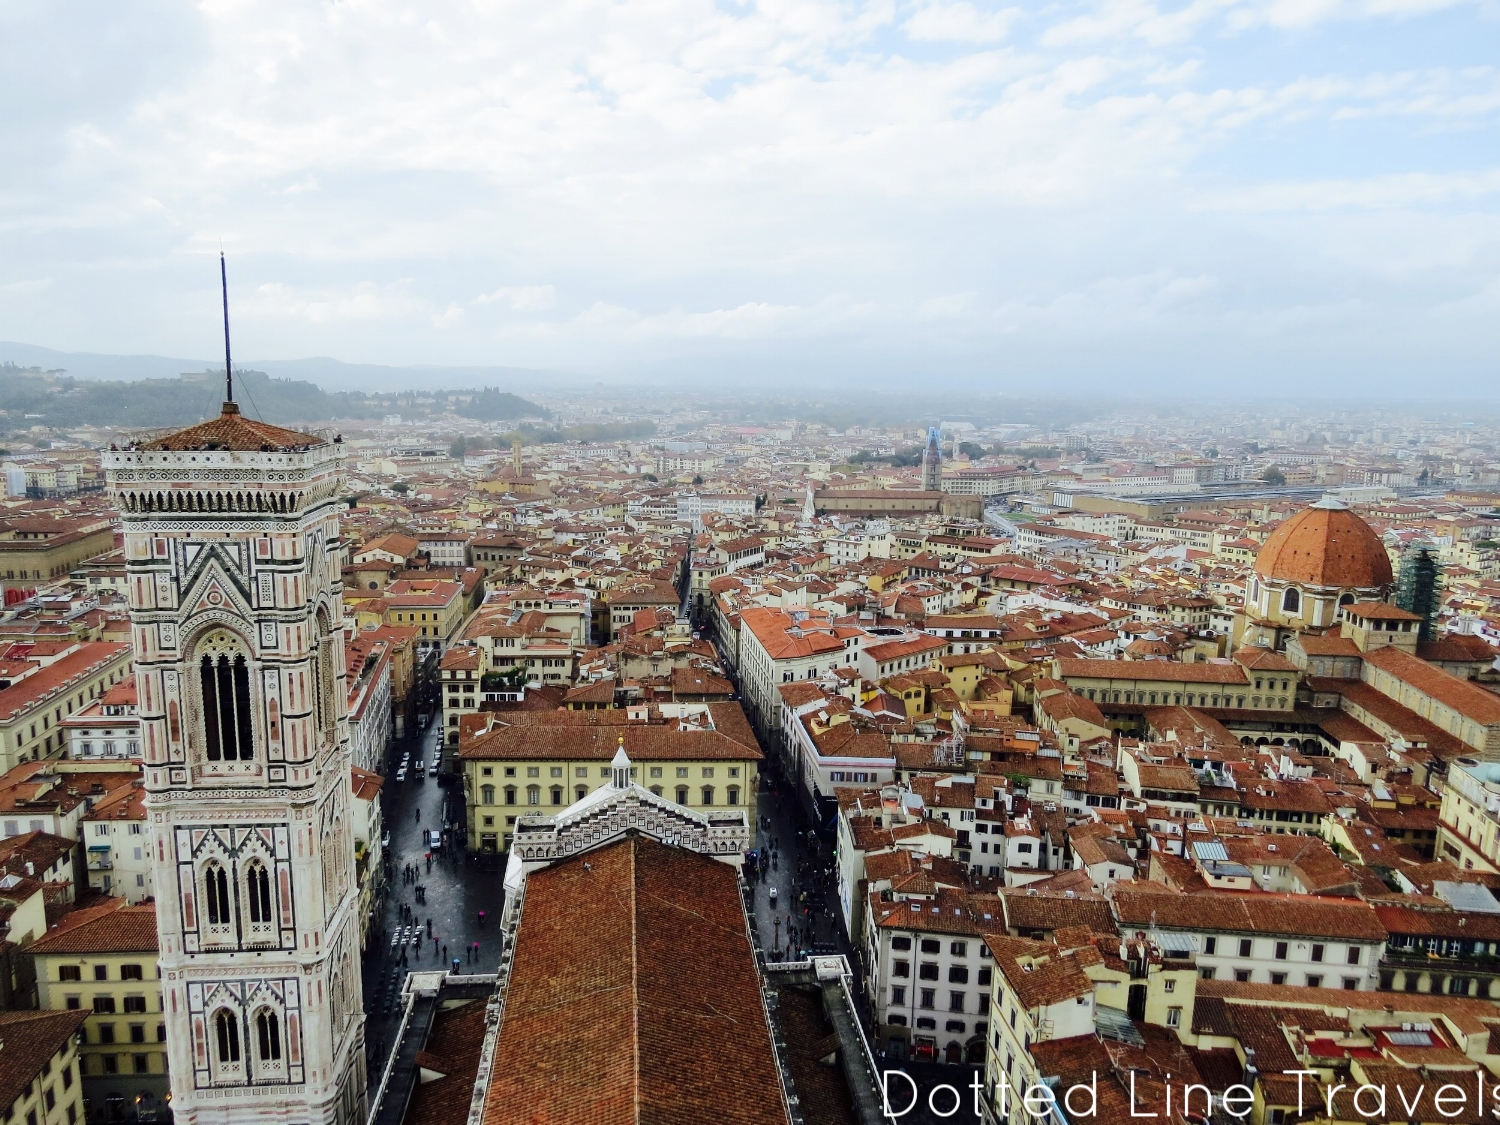 View from the dome, Giotto's Bell Tower is seen on the left.